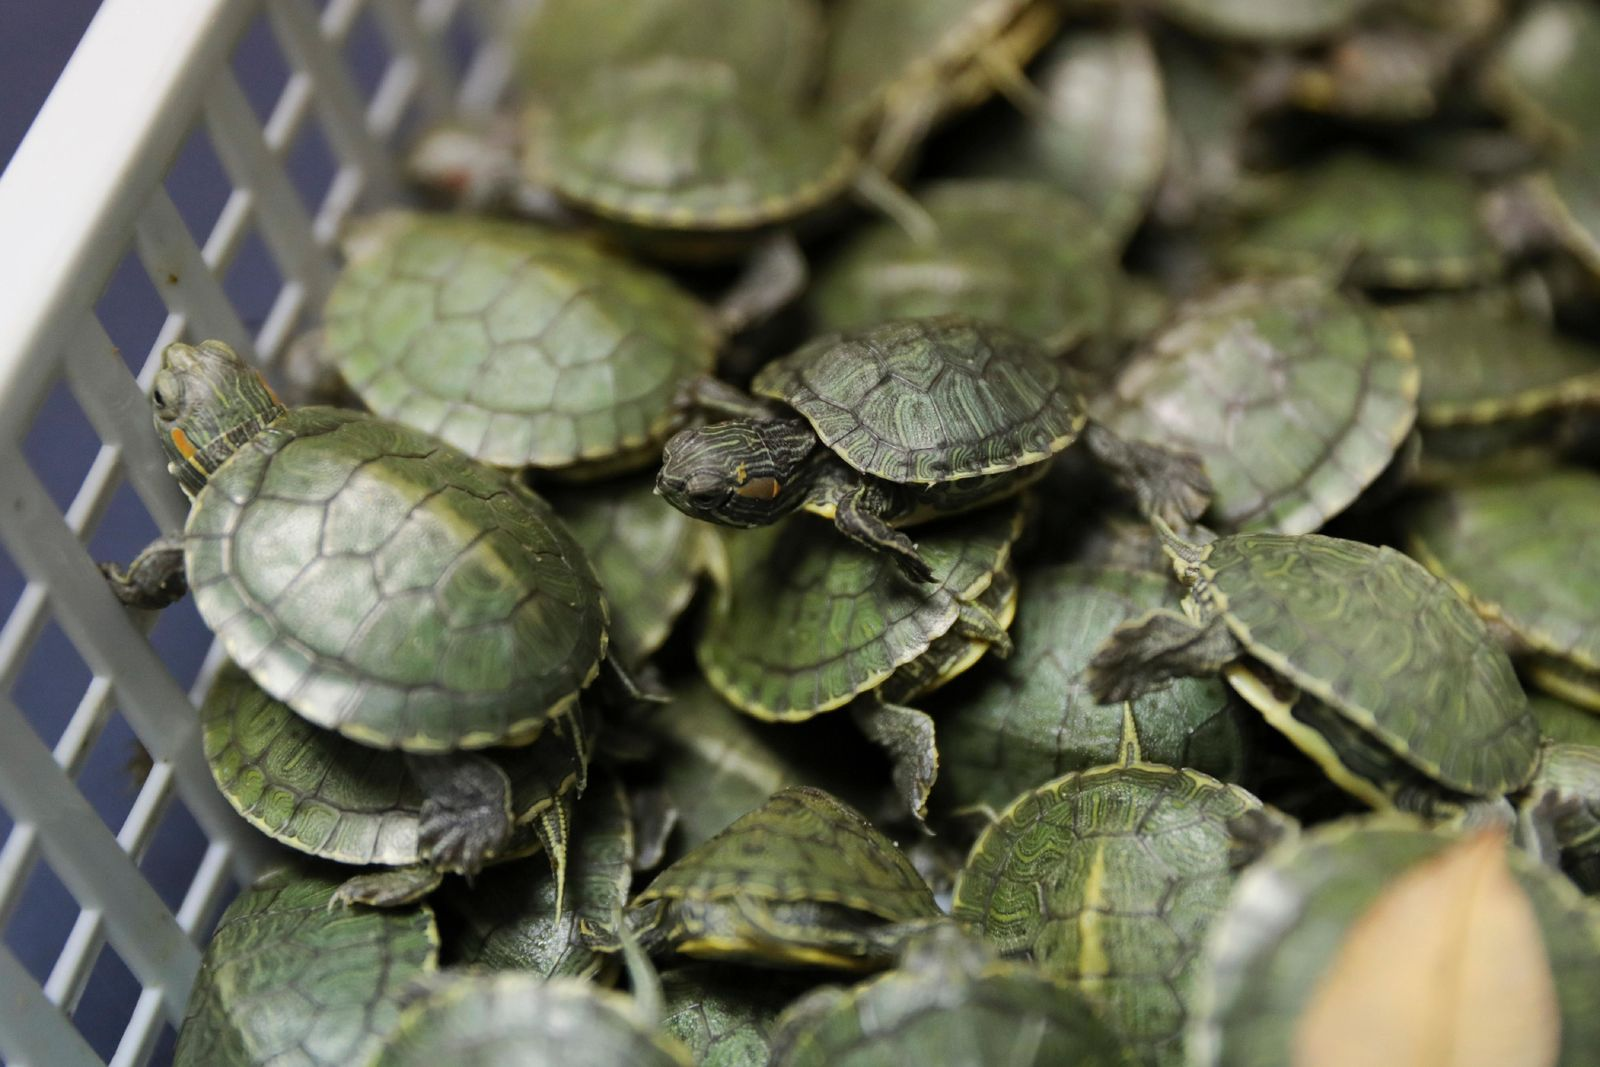 Customs officials display seized turtles at the customs office Wednesday, June 26, 2019, in Sepang, Malaysia. (AP Photo/Vincent Thian)